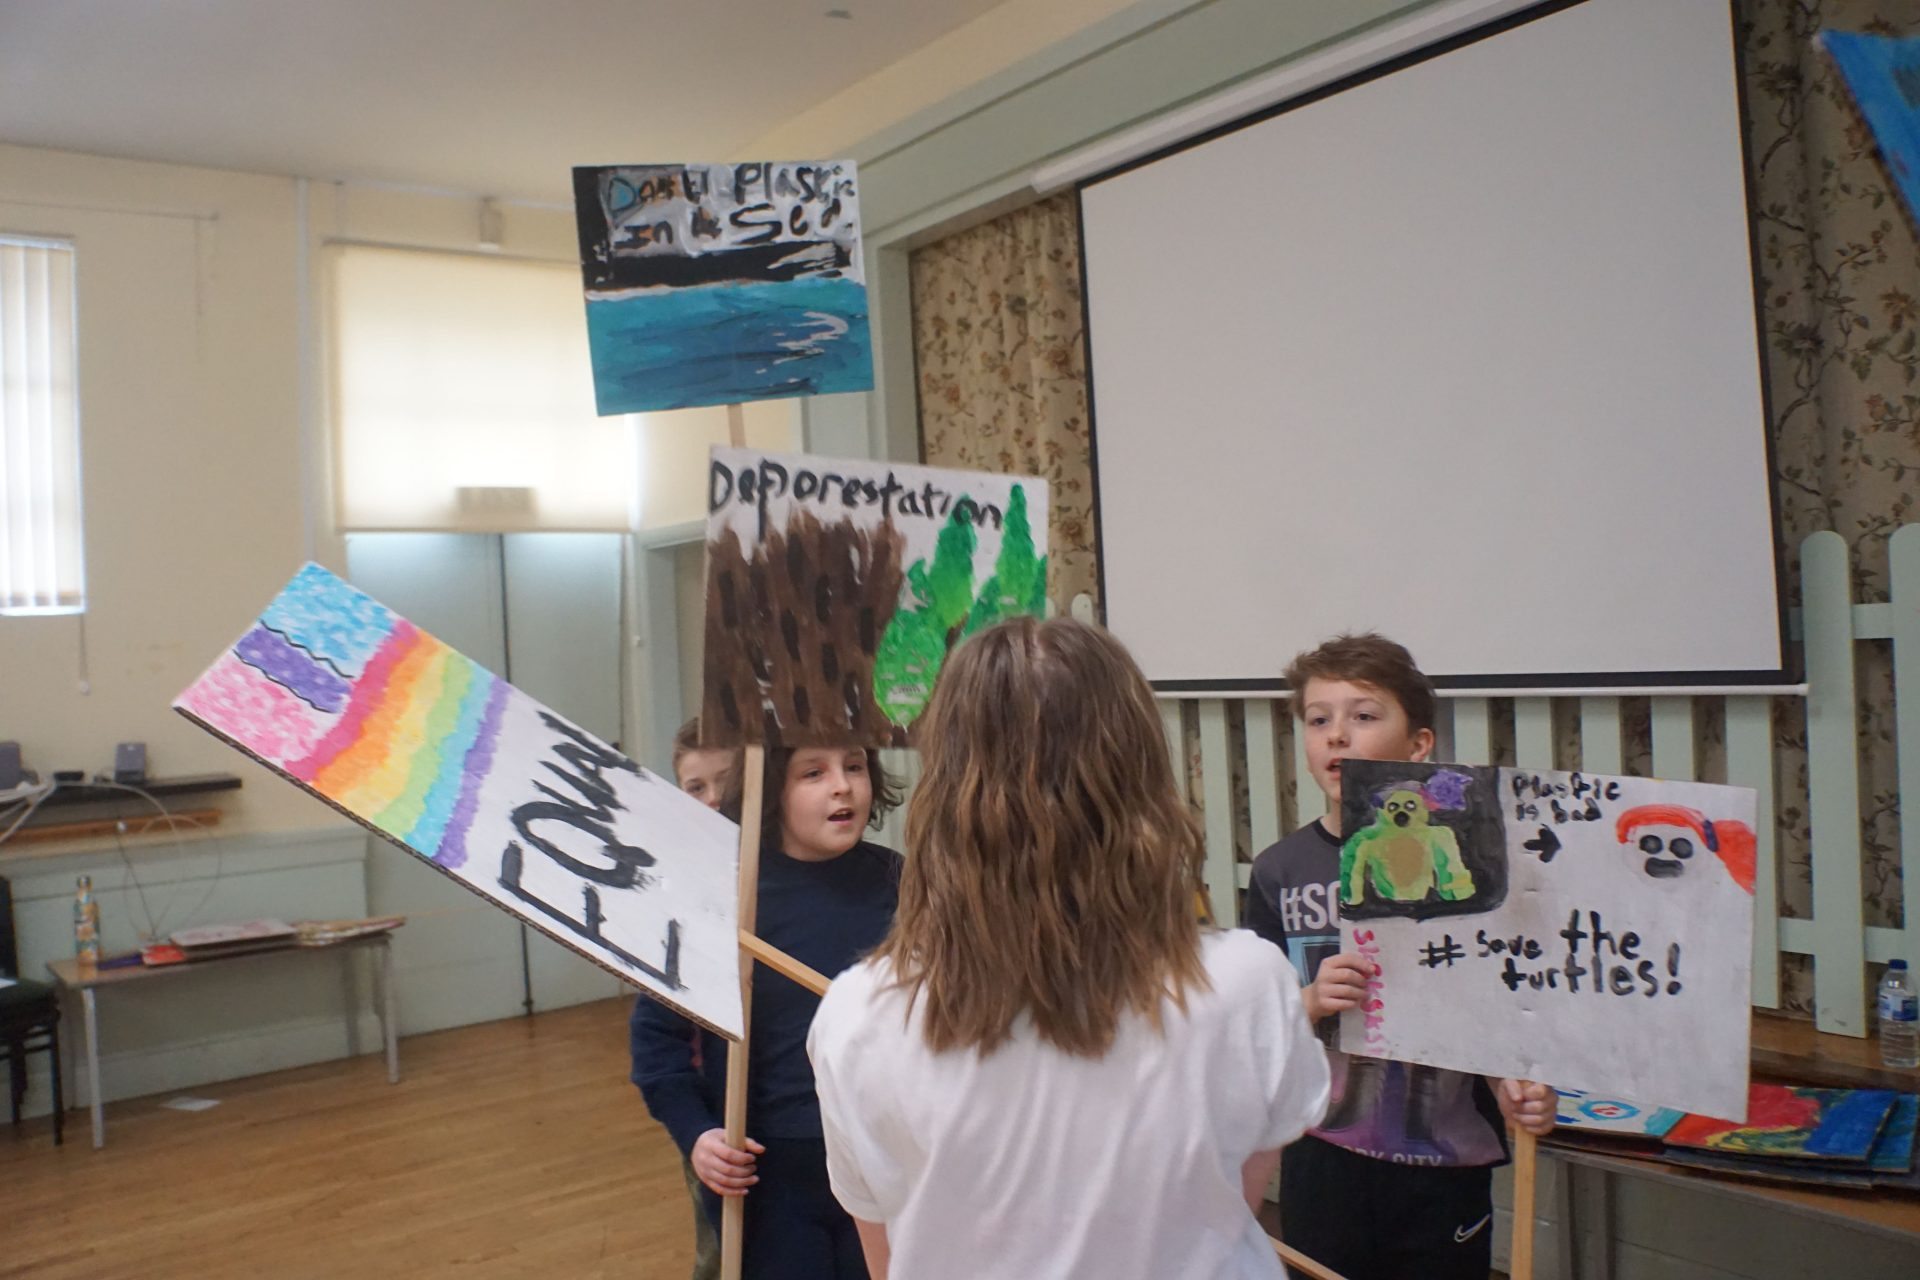 A Doorstep Arts' Saturday group designing protest banners for causes they care about. Four childrne hold colourful signs about equality, deforestation and saving the turtles.